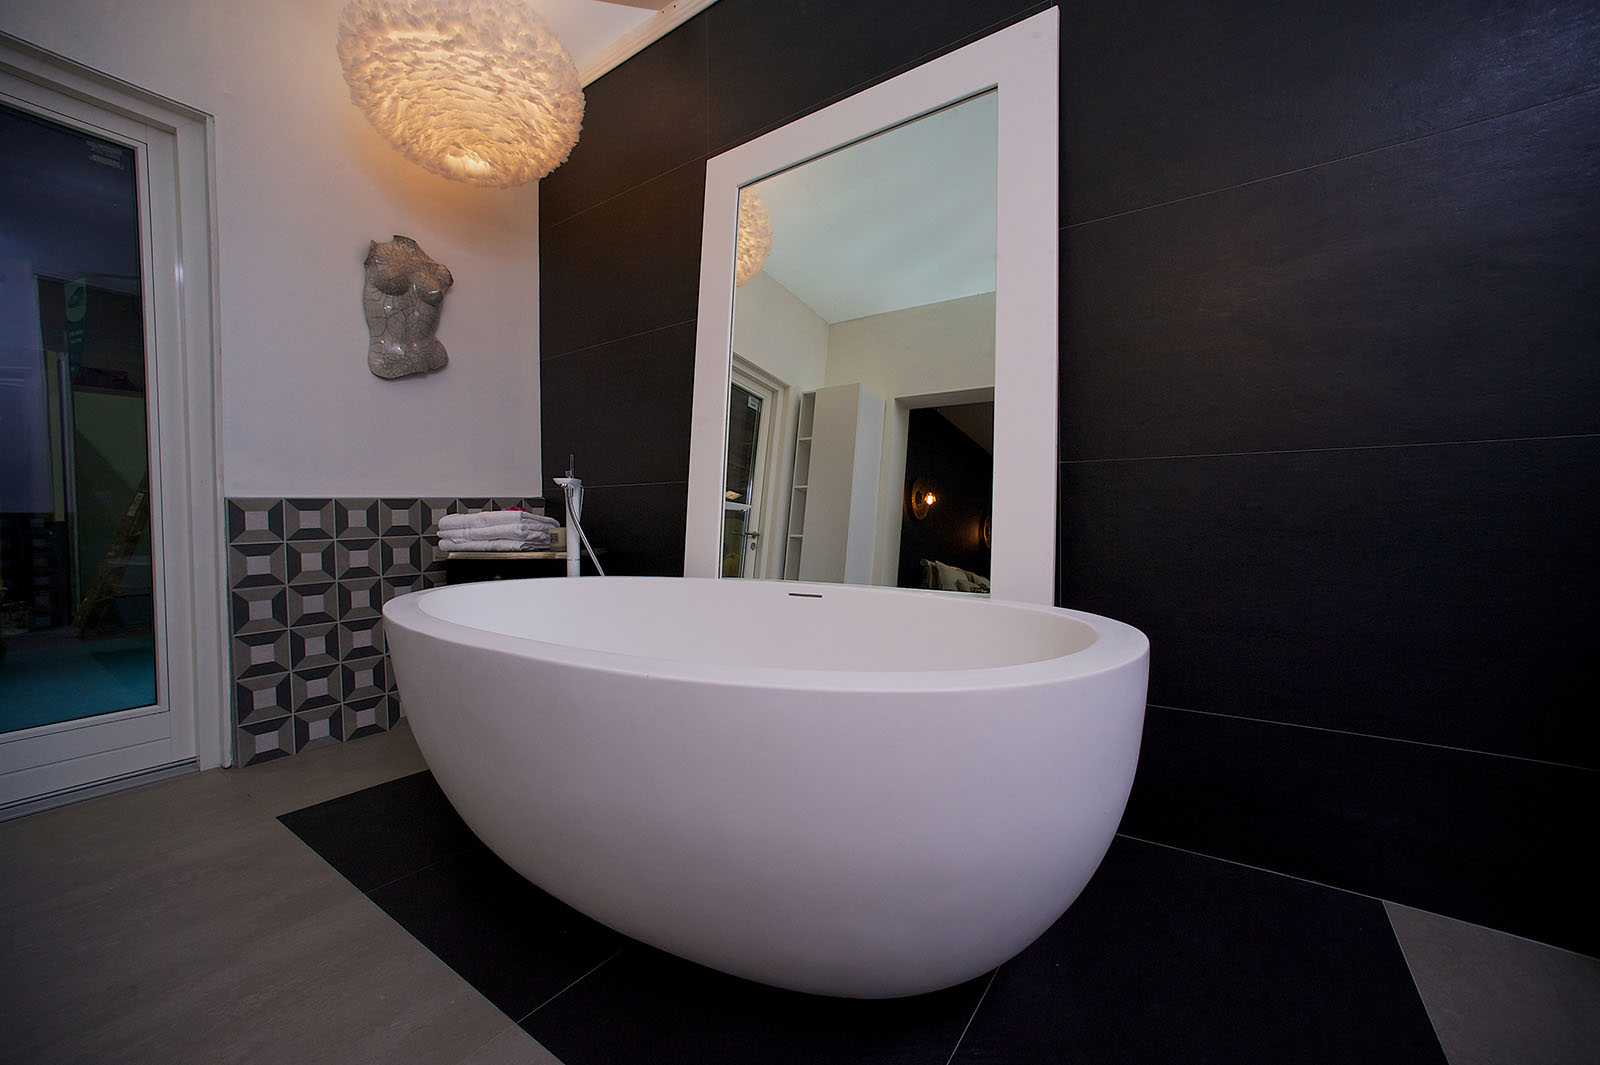 Cleary bathroom design dublin kildare specialising in for Bathroom design dublin